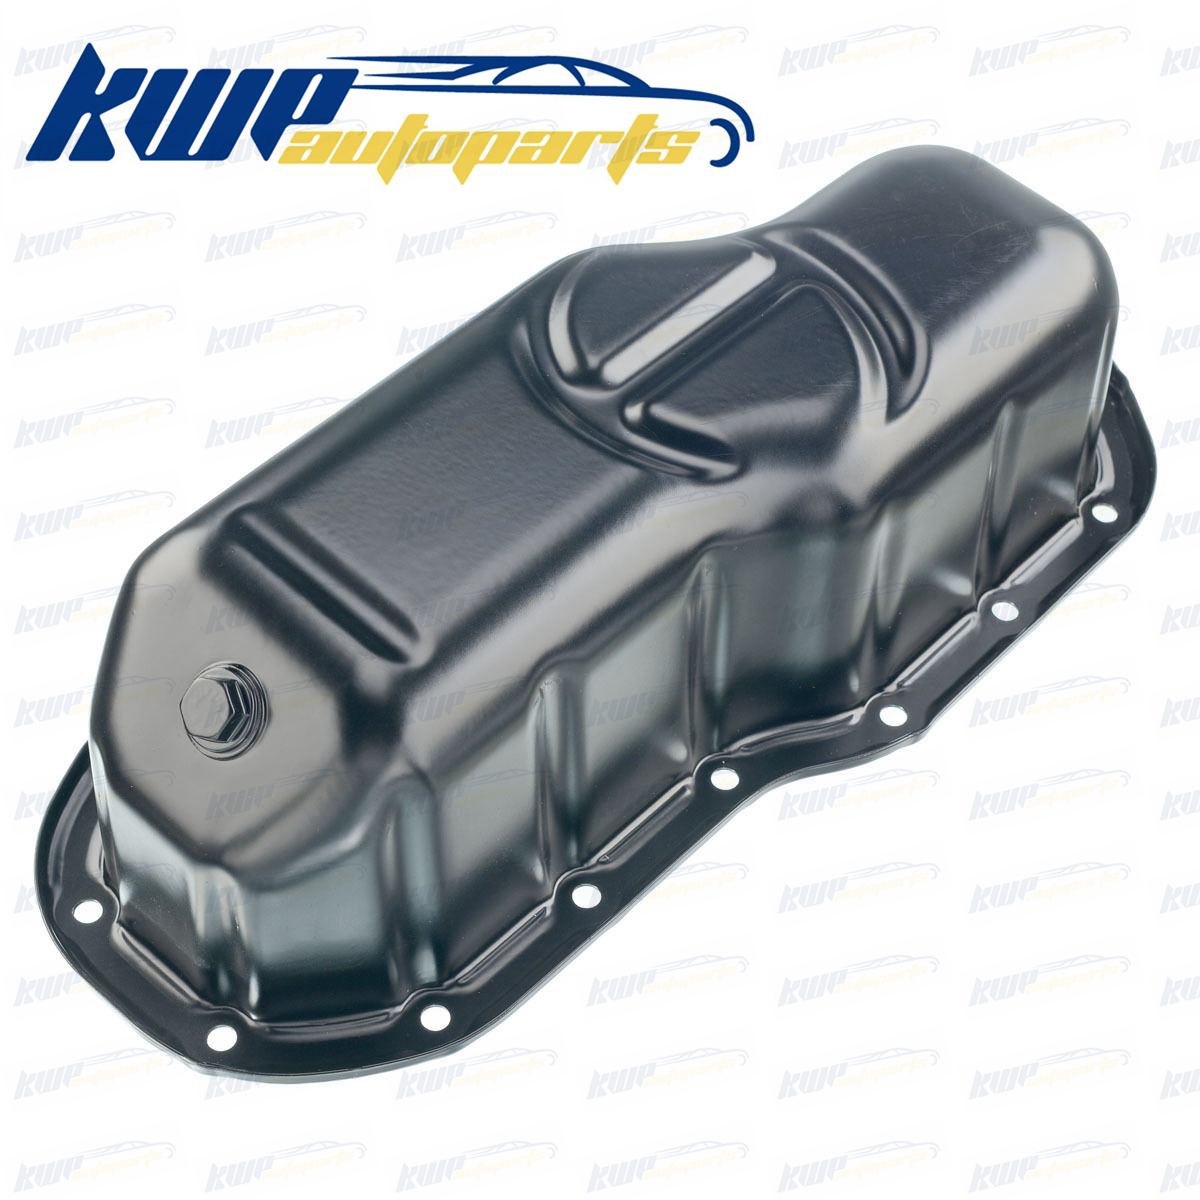 Lower oil pan for toyota tundra 2007 2014 landcruiser sequoia lexus lx570 5 7l 12102 38010 12102 0s010 in engine from automobiles motorcycles on